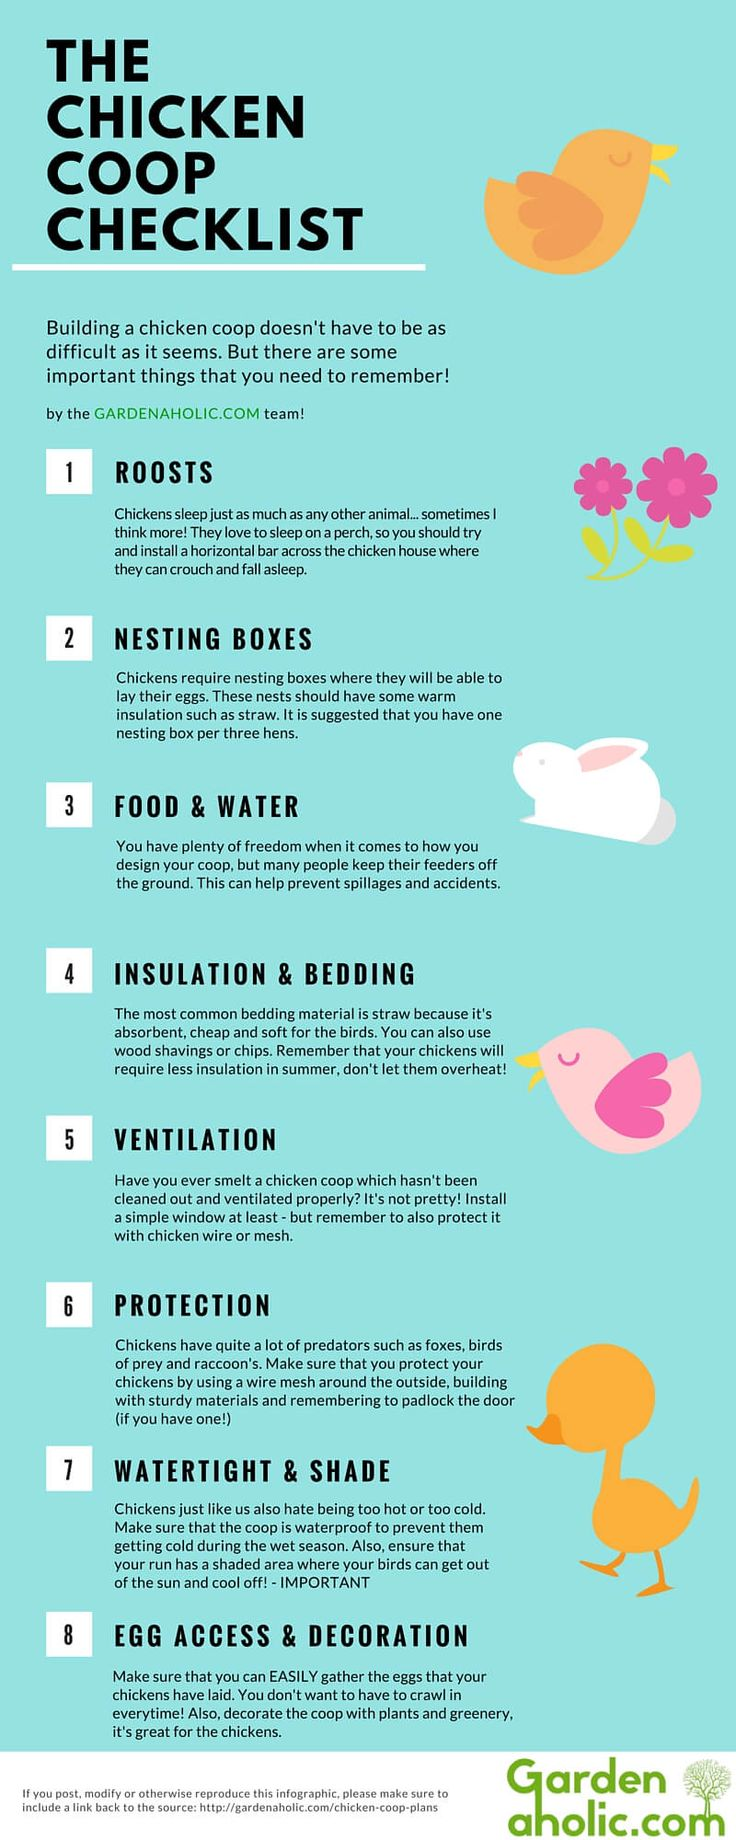 Control your own food supply with backyard chickens. Quickly learnwhat your chickens need withthis handy Chicken Coop Checklist Infographic. You